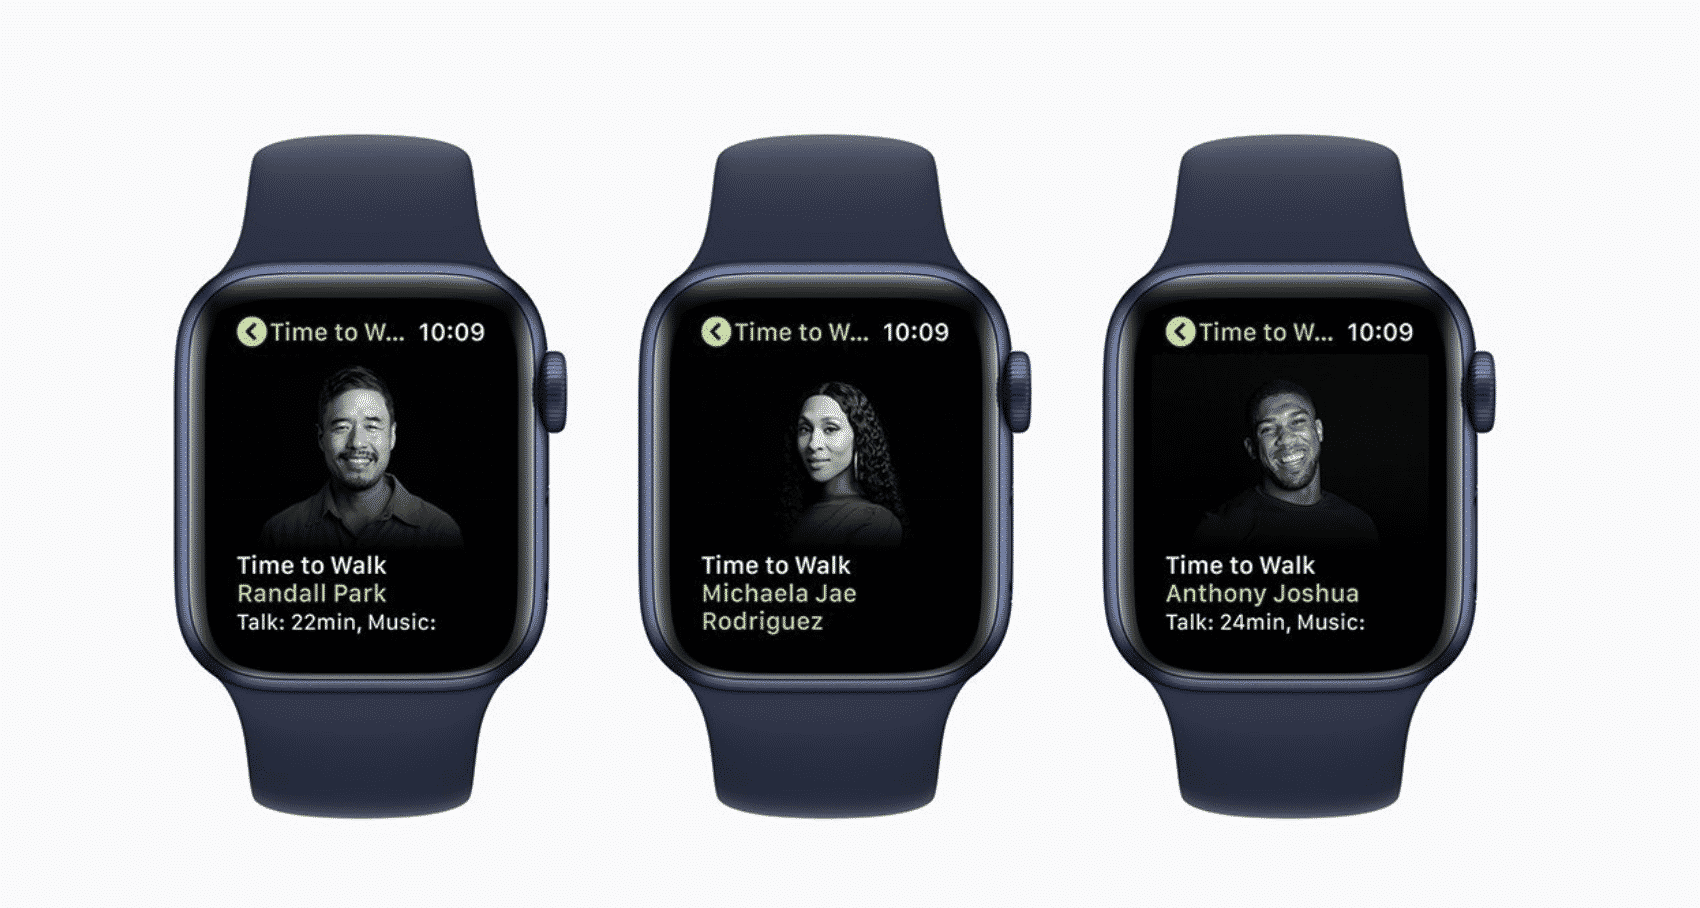 Fall Apple product launches could feature Apple Watch Series 7 and 'Time to Run'